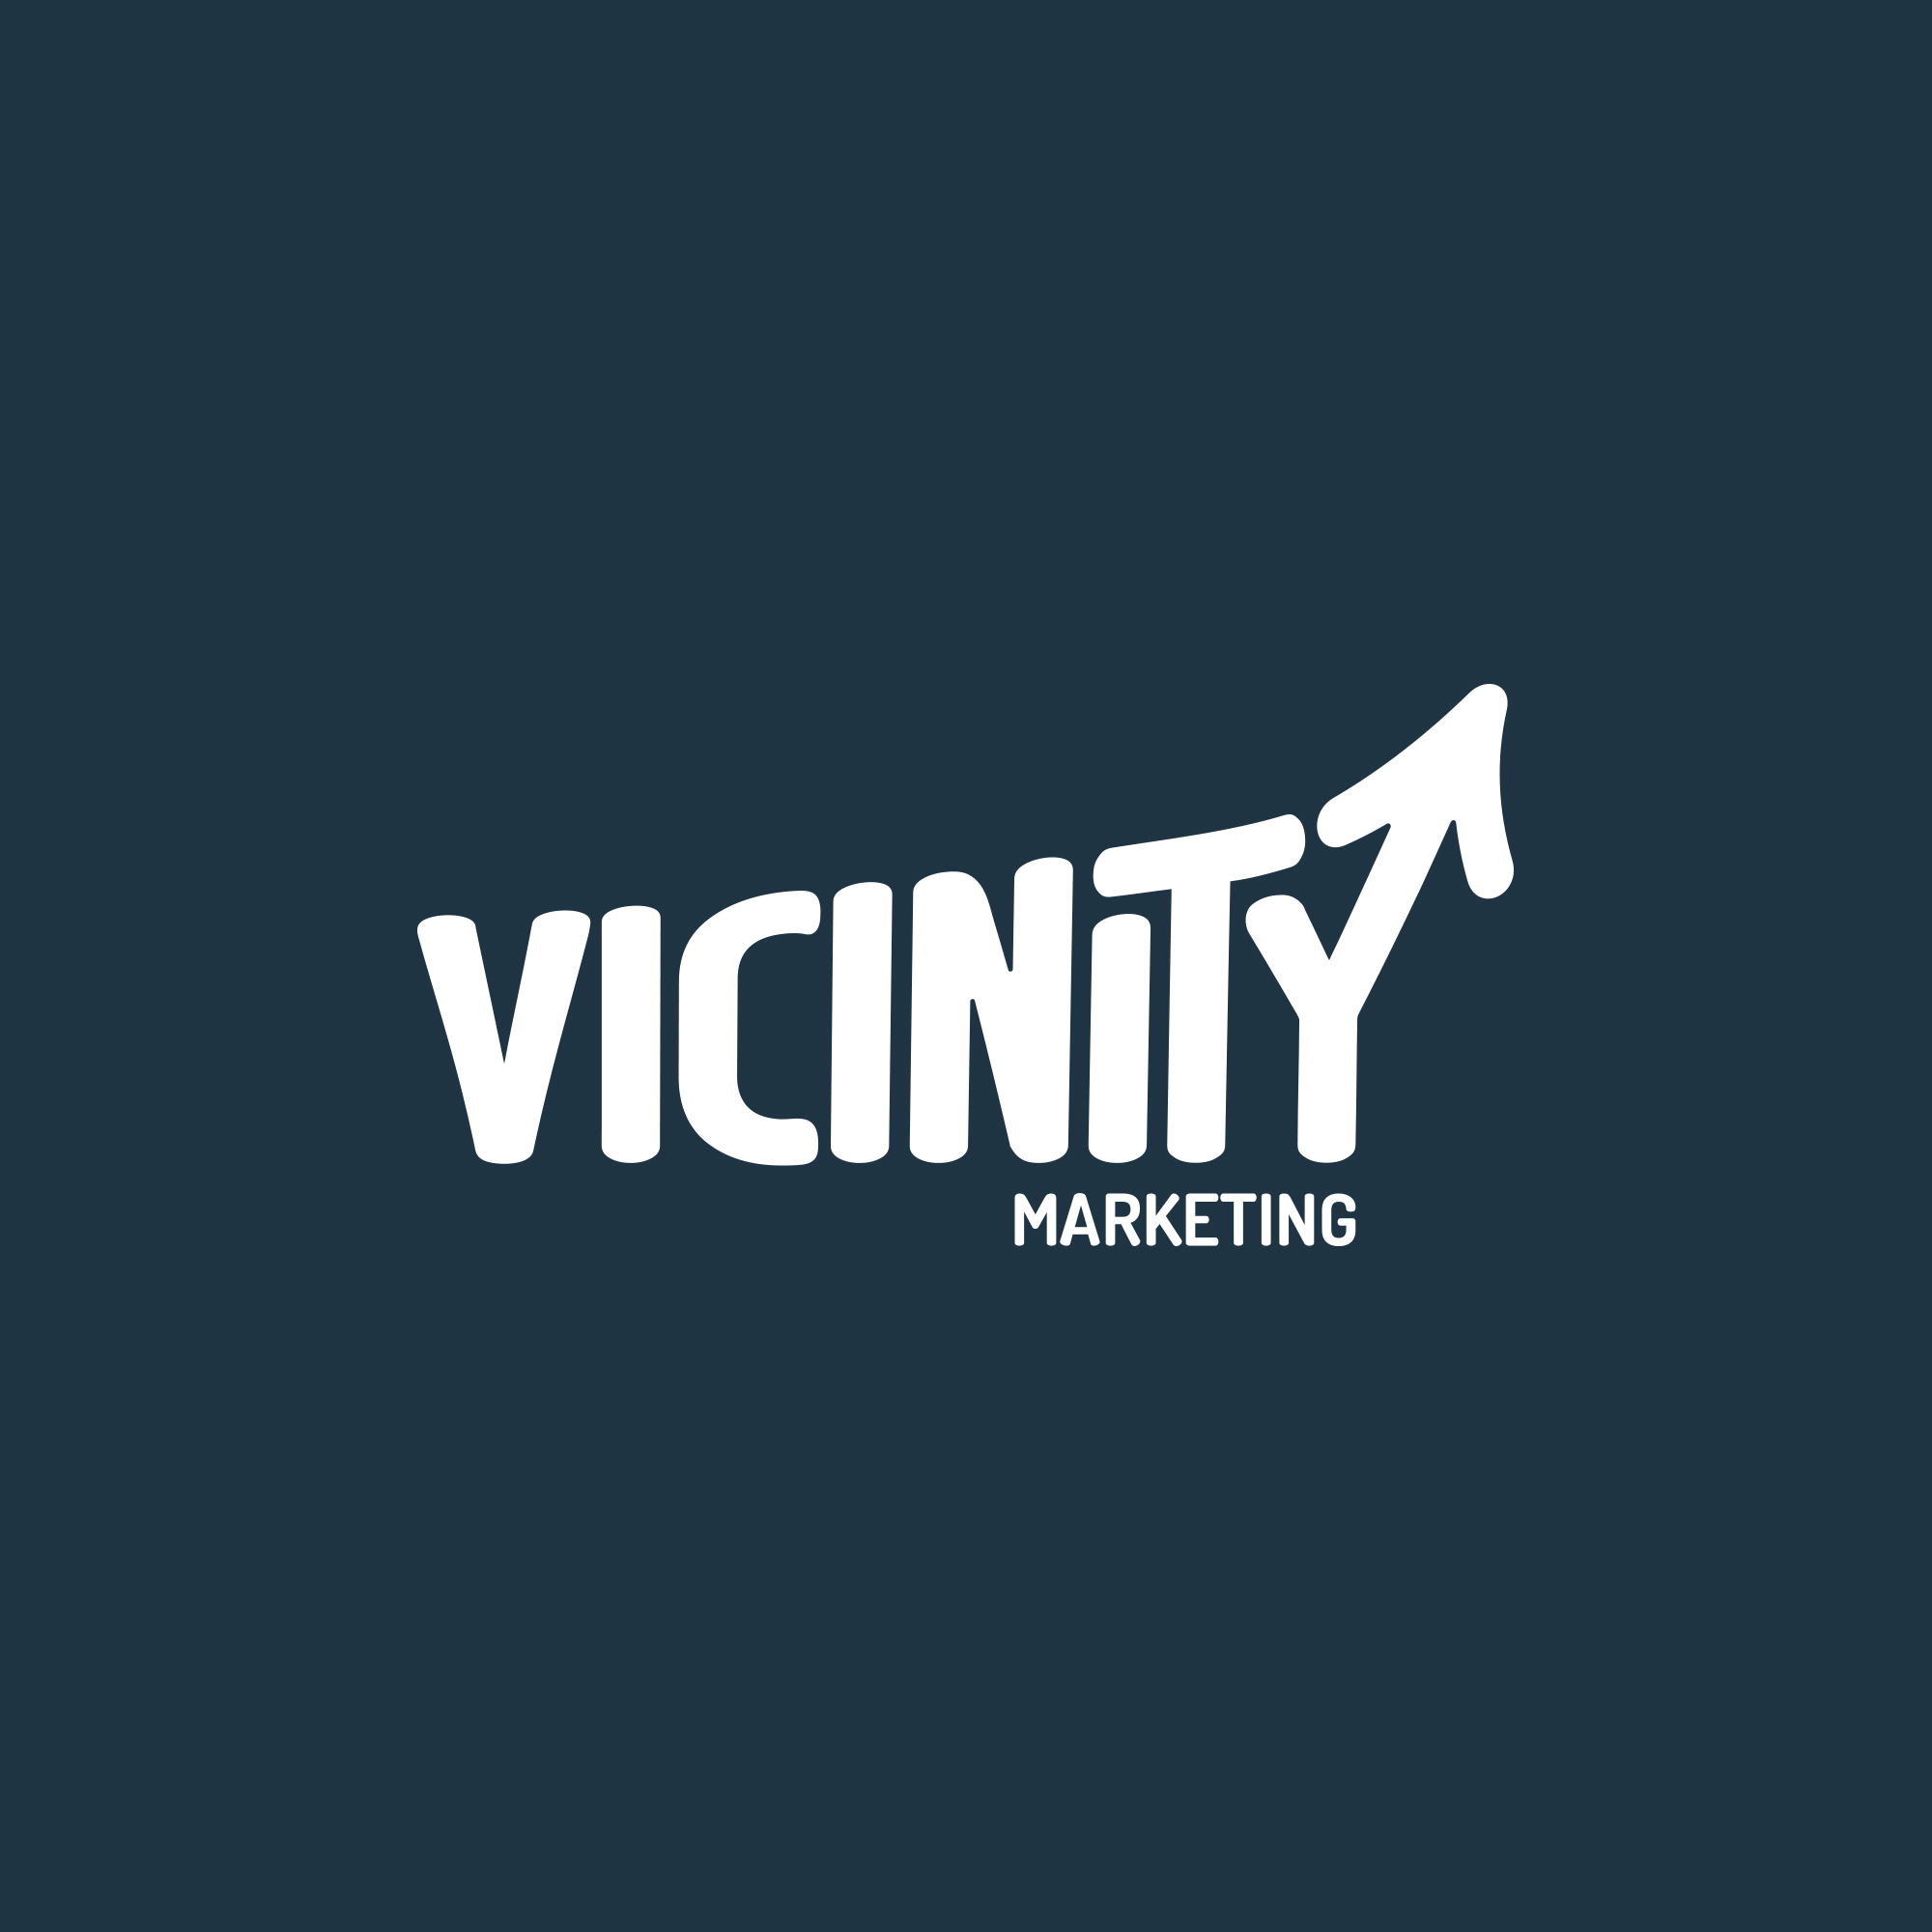 Vicinity Marketing on Blue